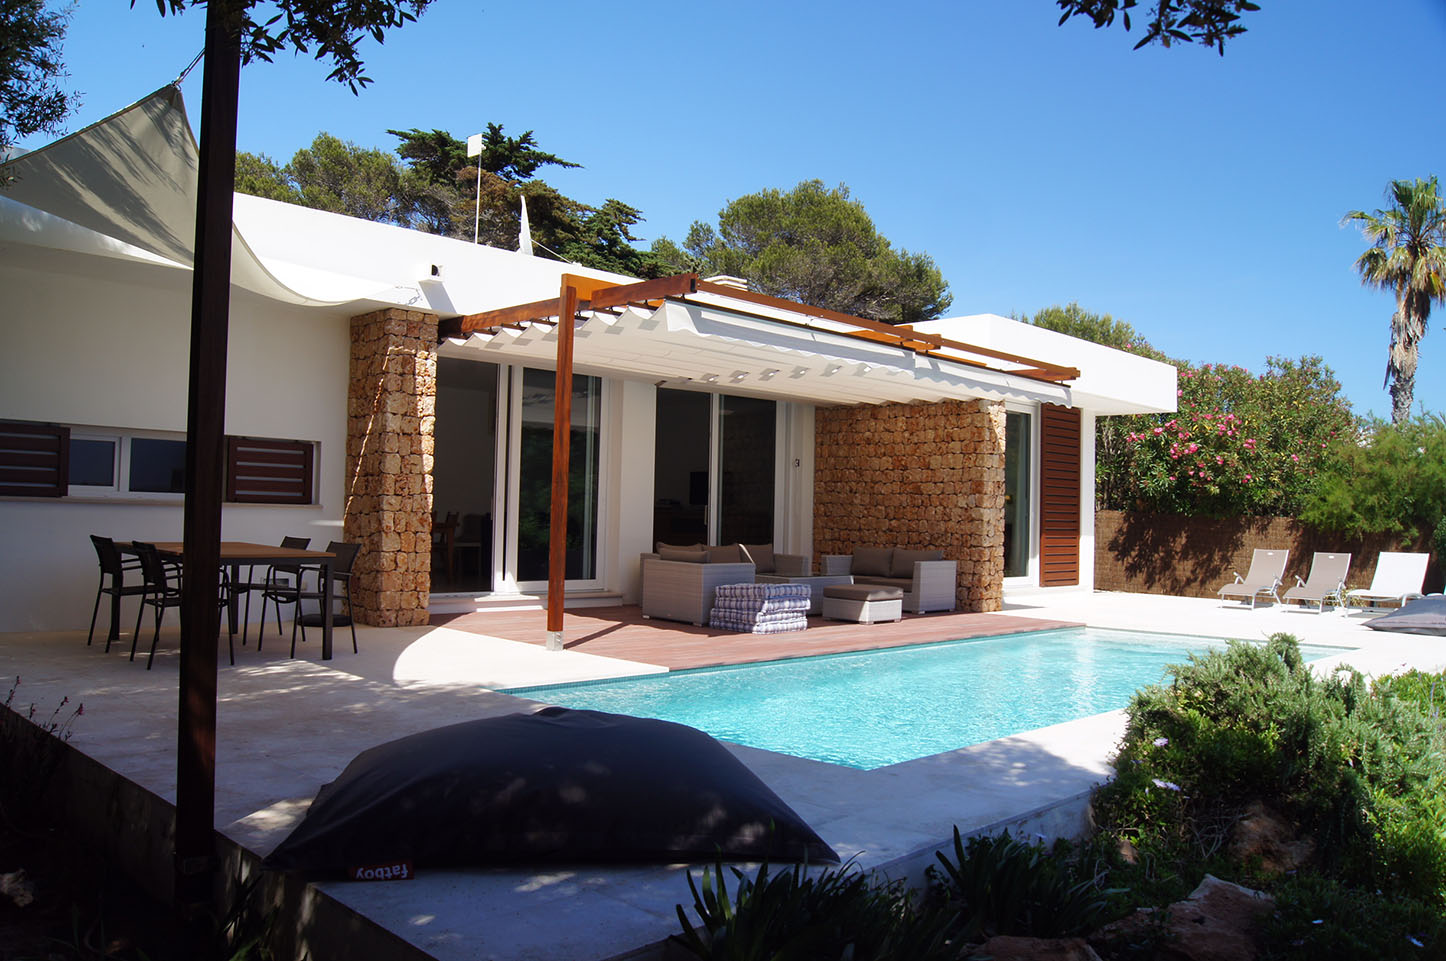 Villas by the beach in Menorca